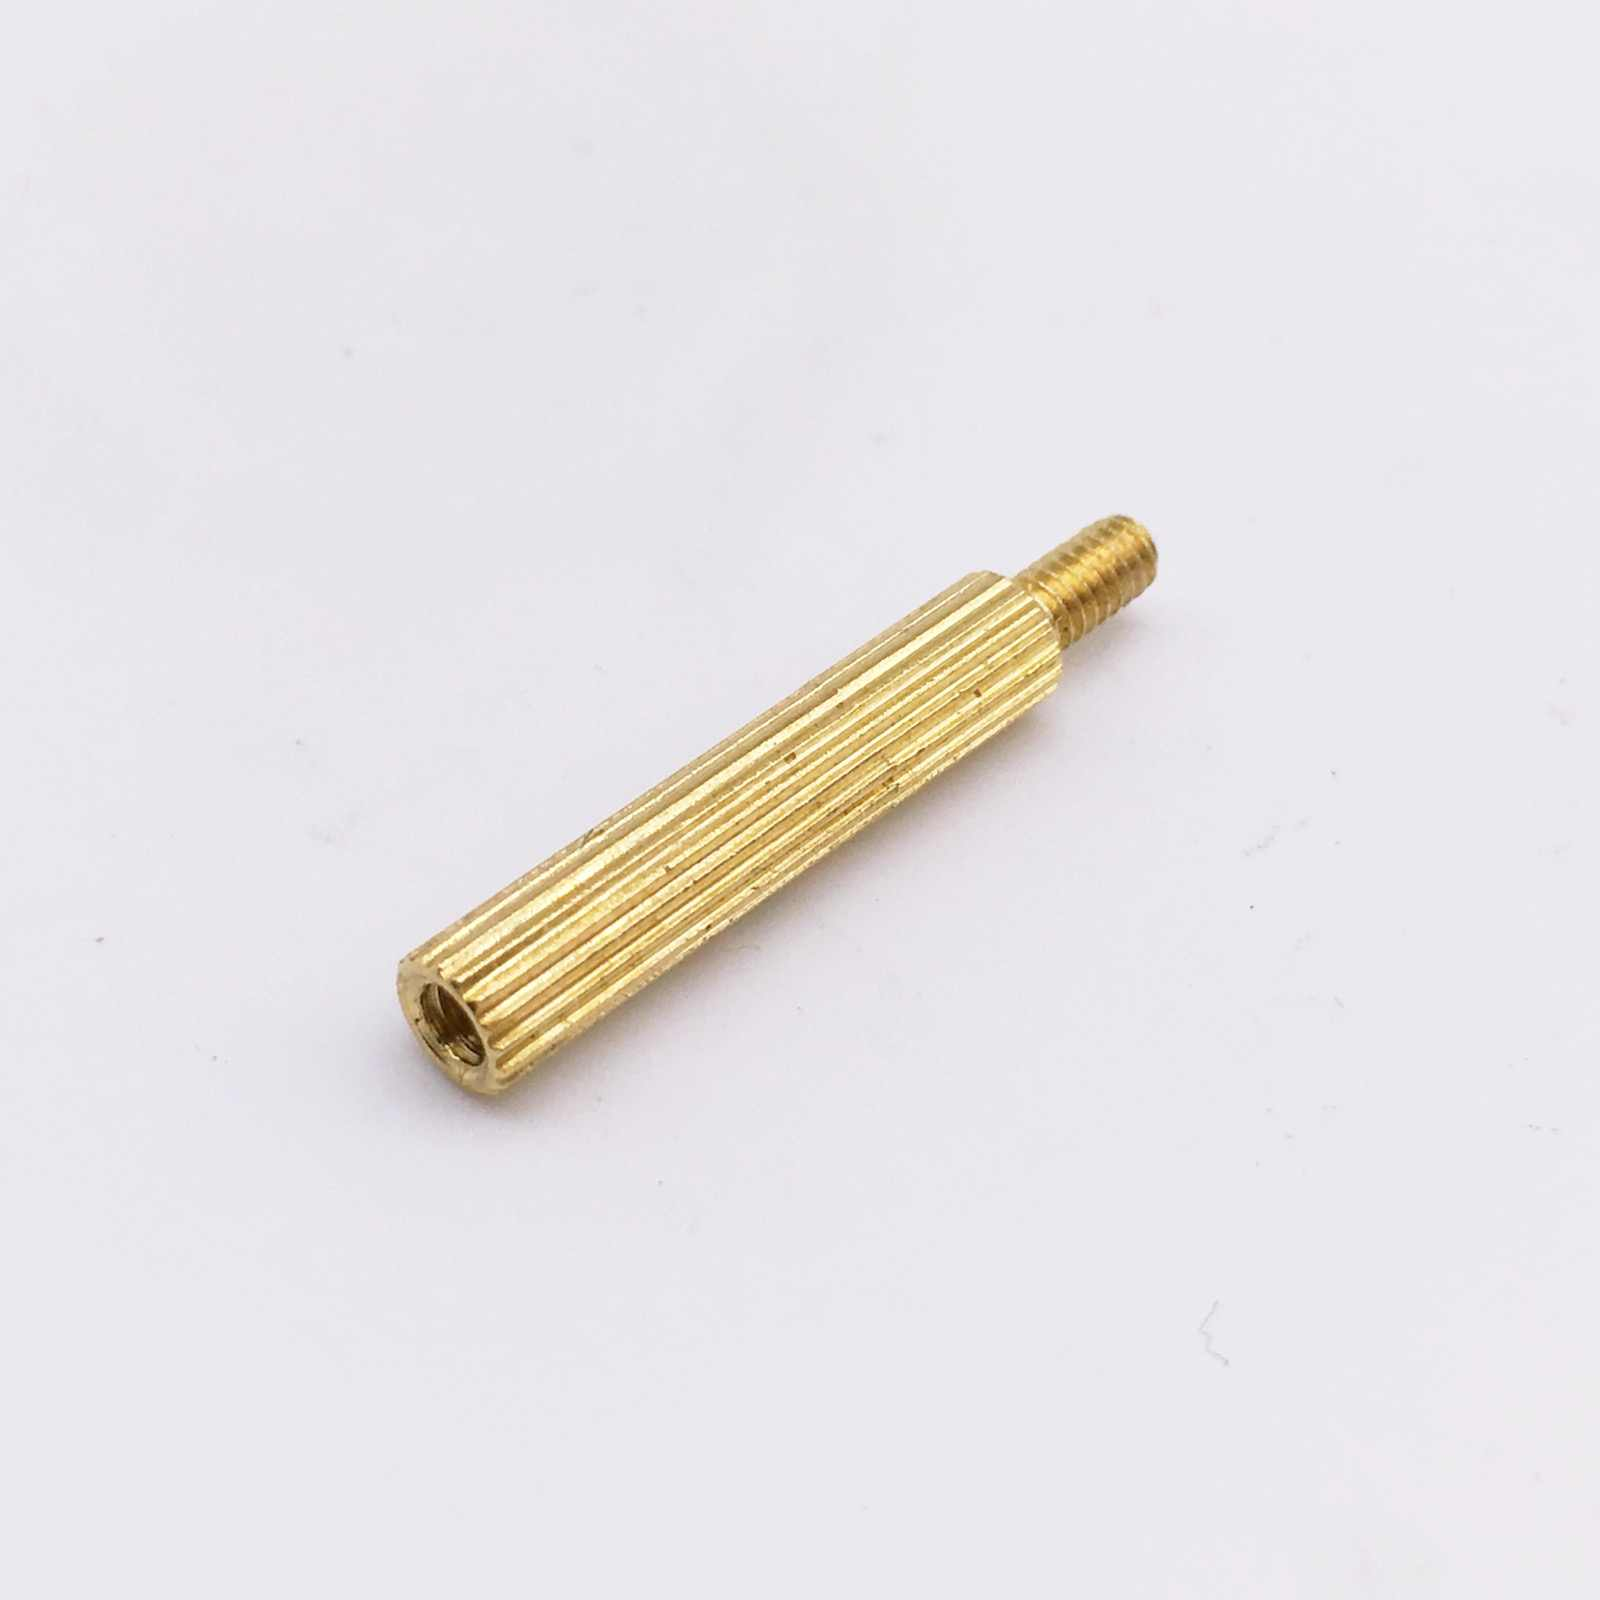 M2x11+4 Male to Female Thread Brass Pillars Cylindrical Standoff Spacer